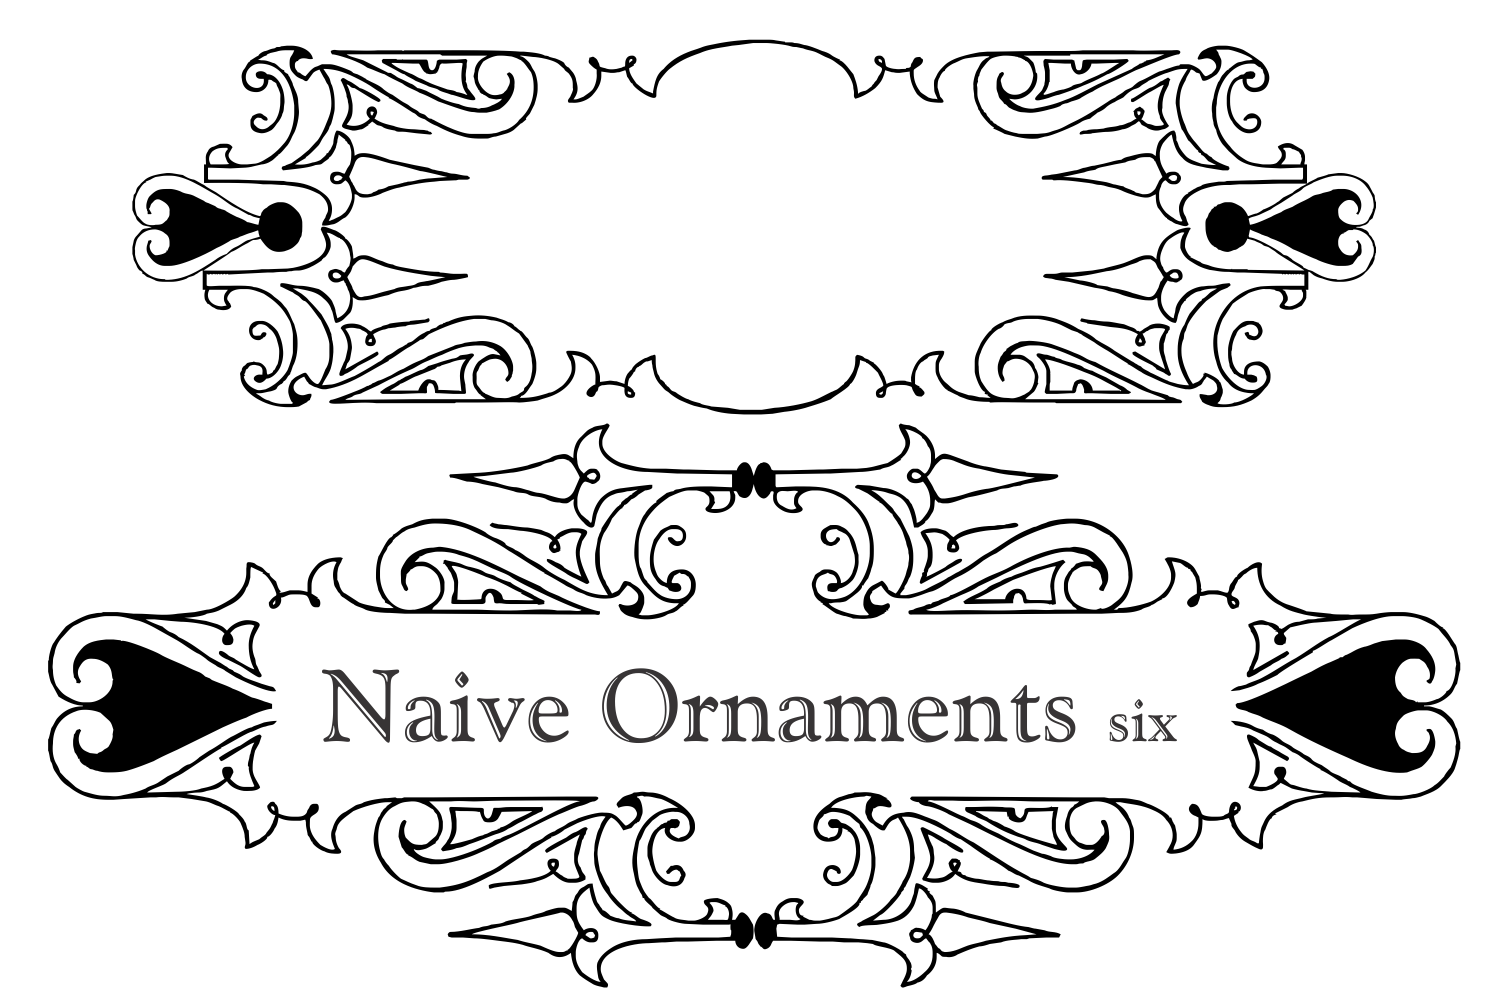 Naive Ornaments Six example image 6